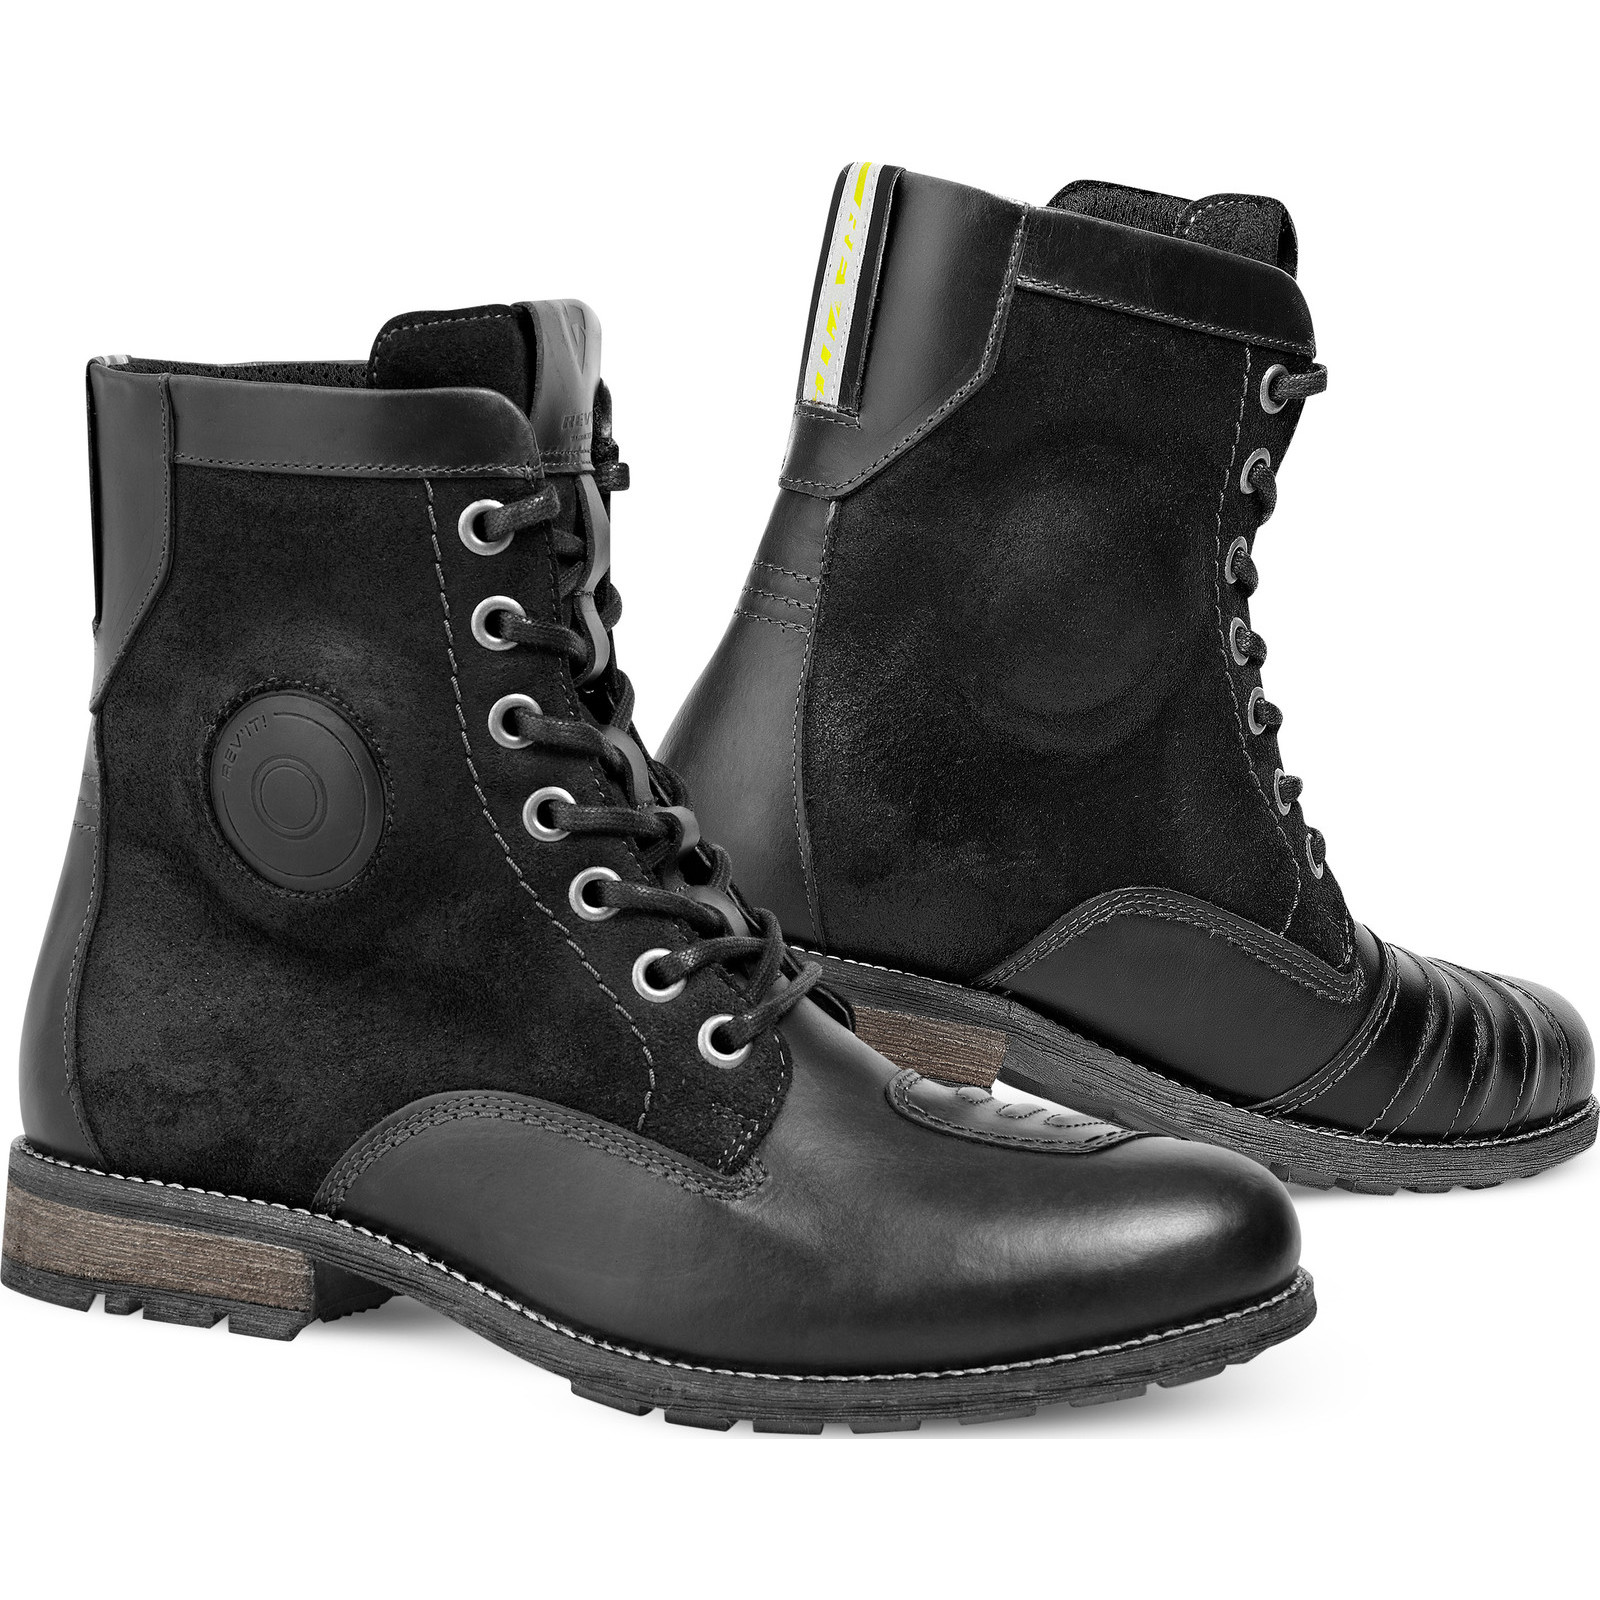 rev it regent motorcycle leather boots water resistant